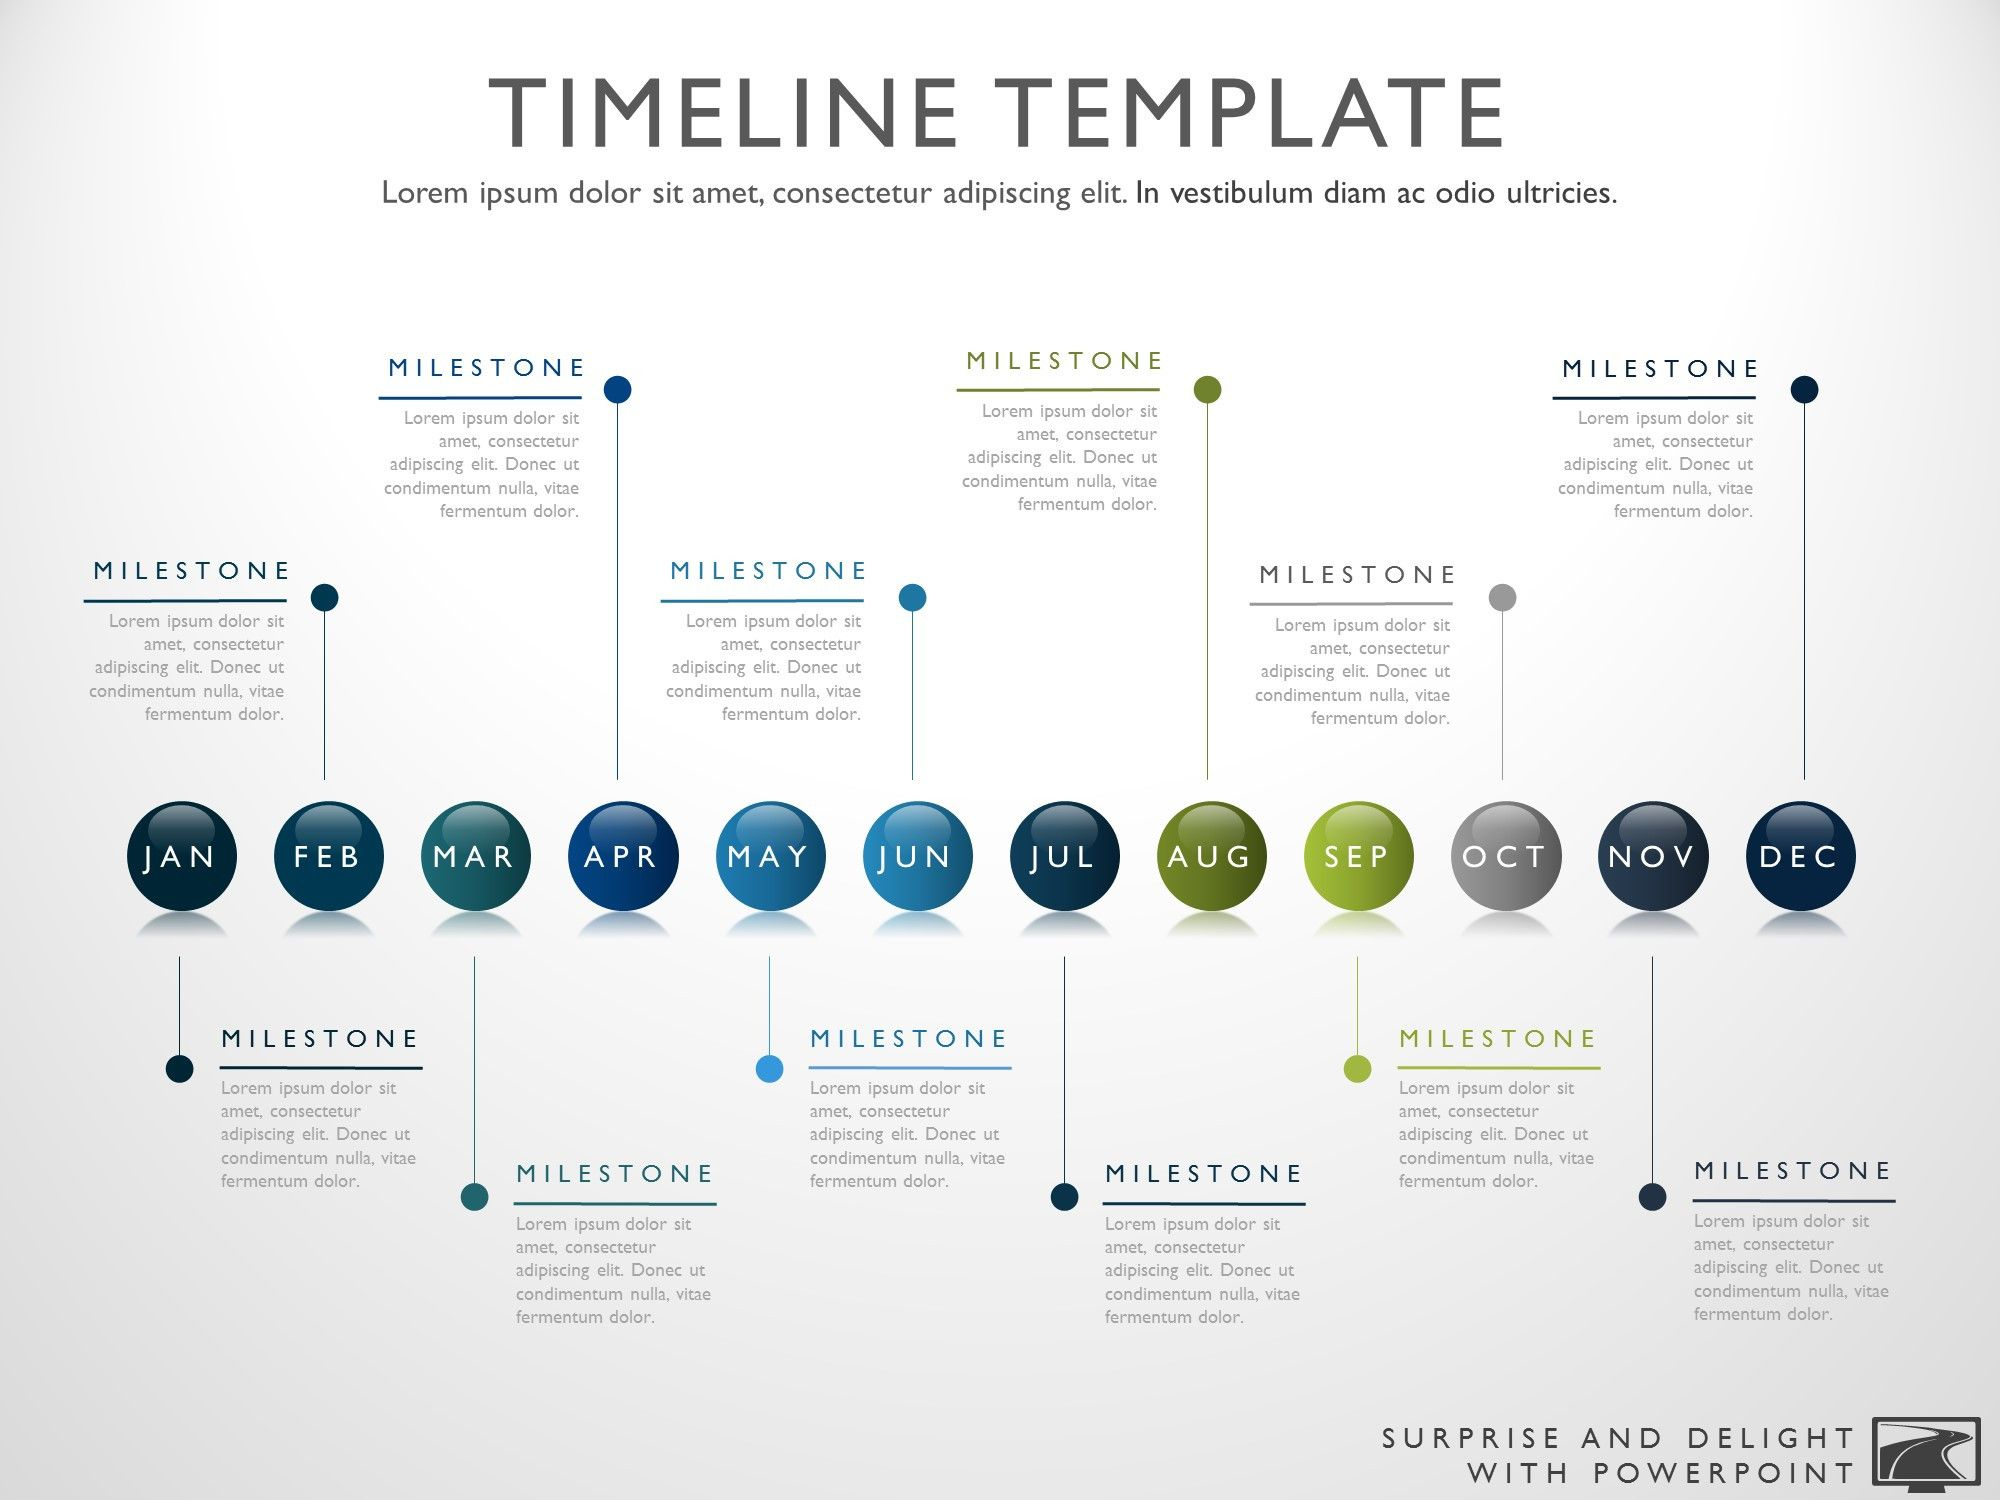 Timeline template my product roadmap denenecek for Best product development companies